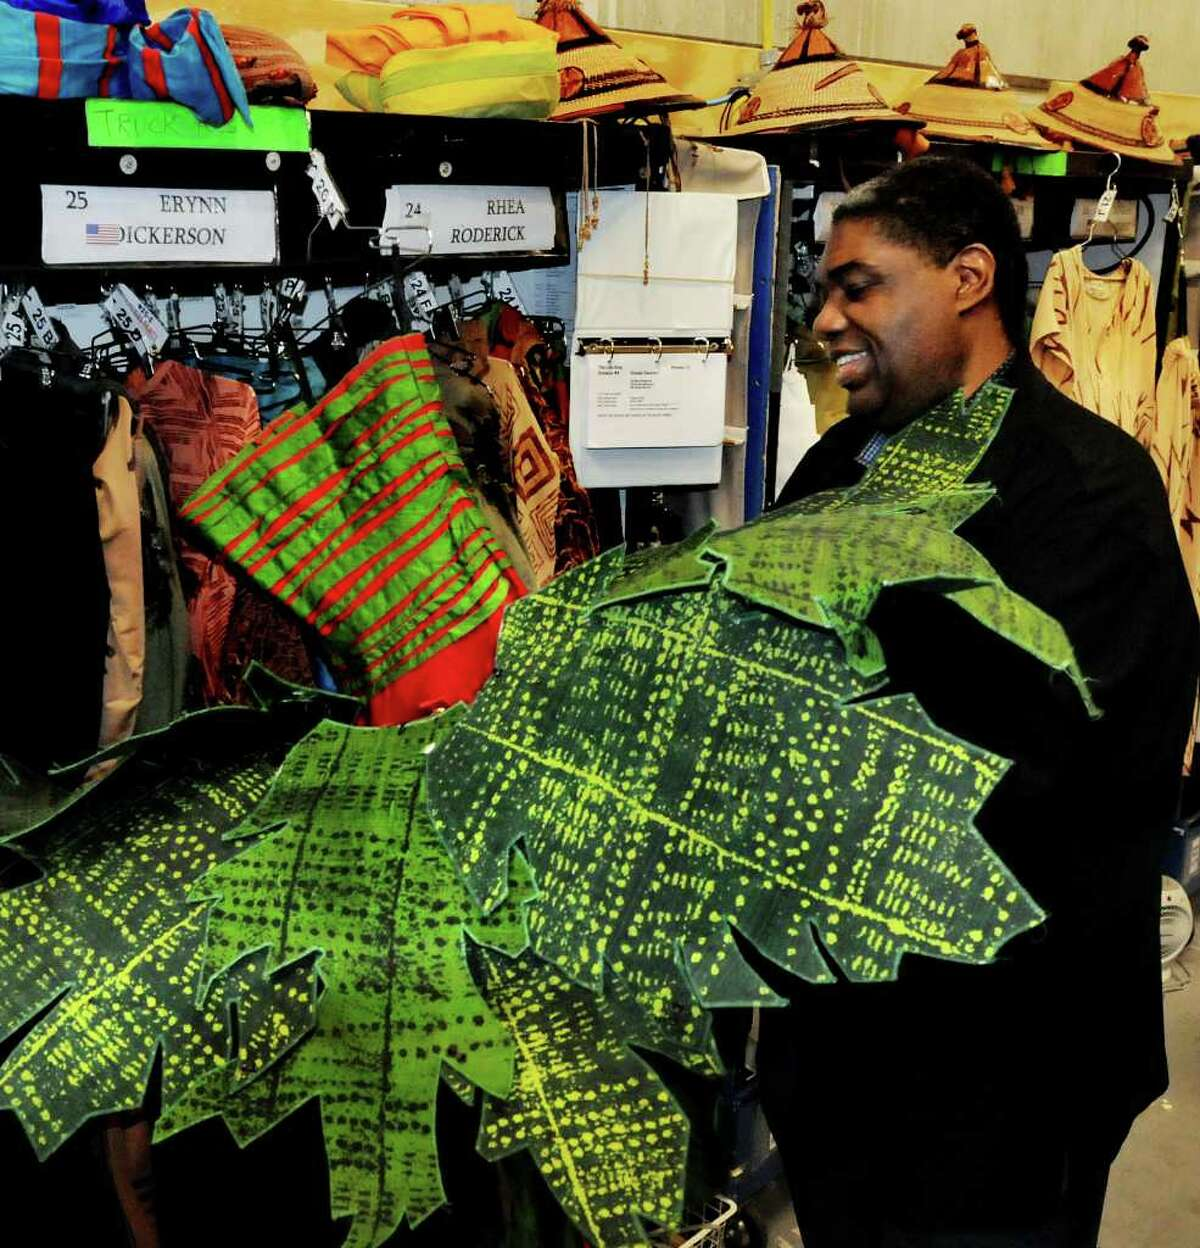 Wardrobe supervisor Gregory Young puts together a jungle tutu dress in the bunker on Wednesday, March 2, 2011, at Proctors Theatre in Schenectady, N.Y. (Cindy Schultz / Times Union)